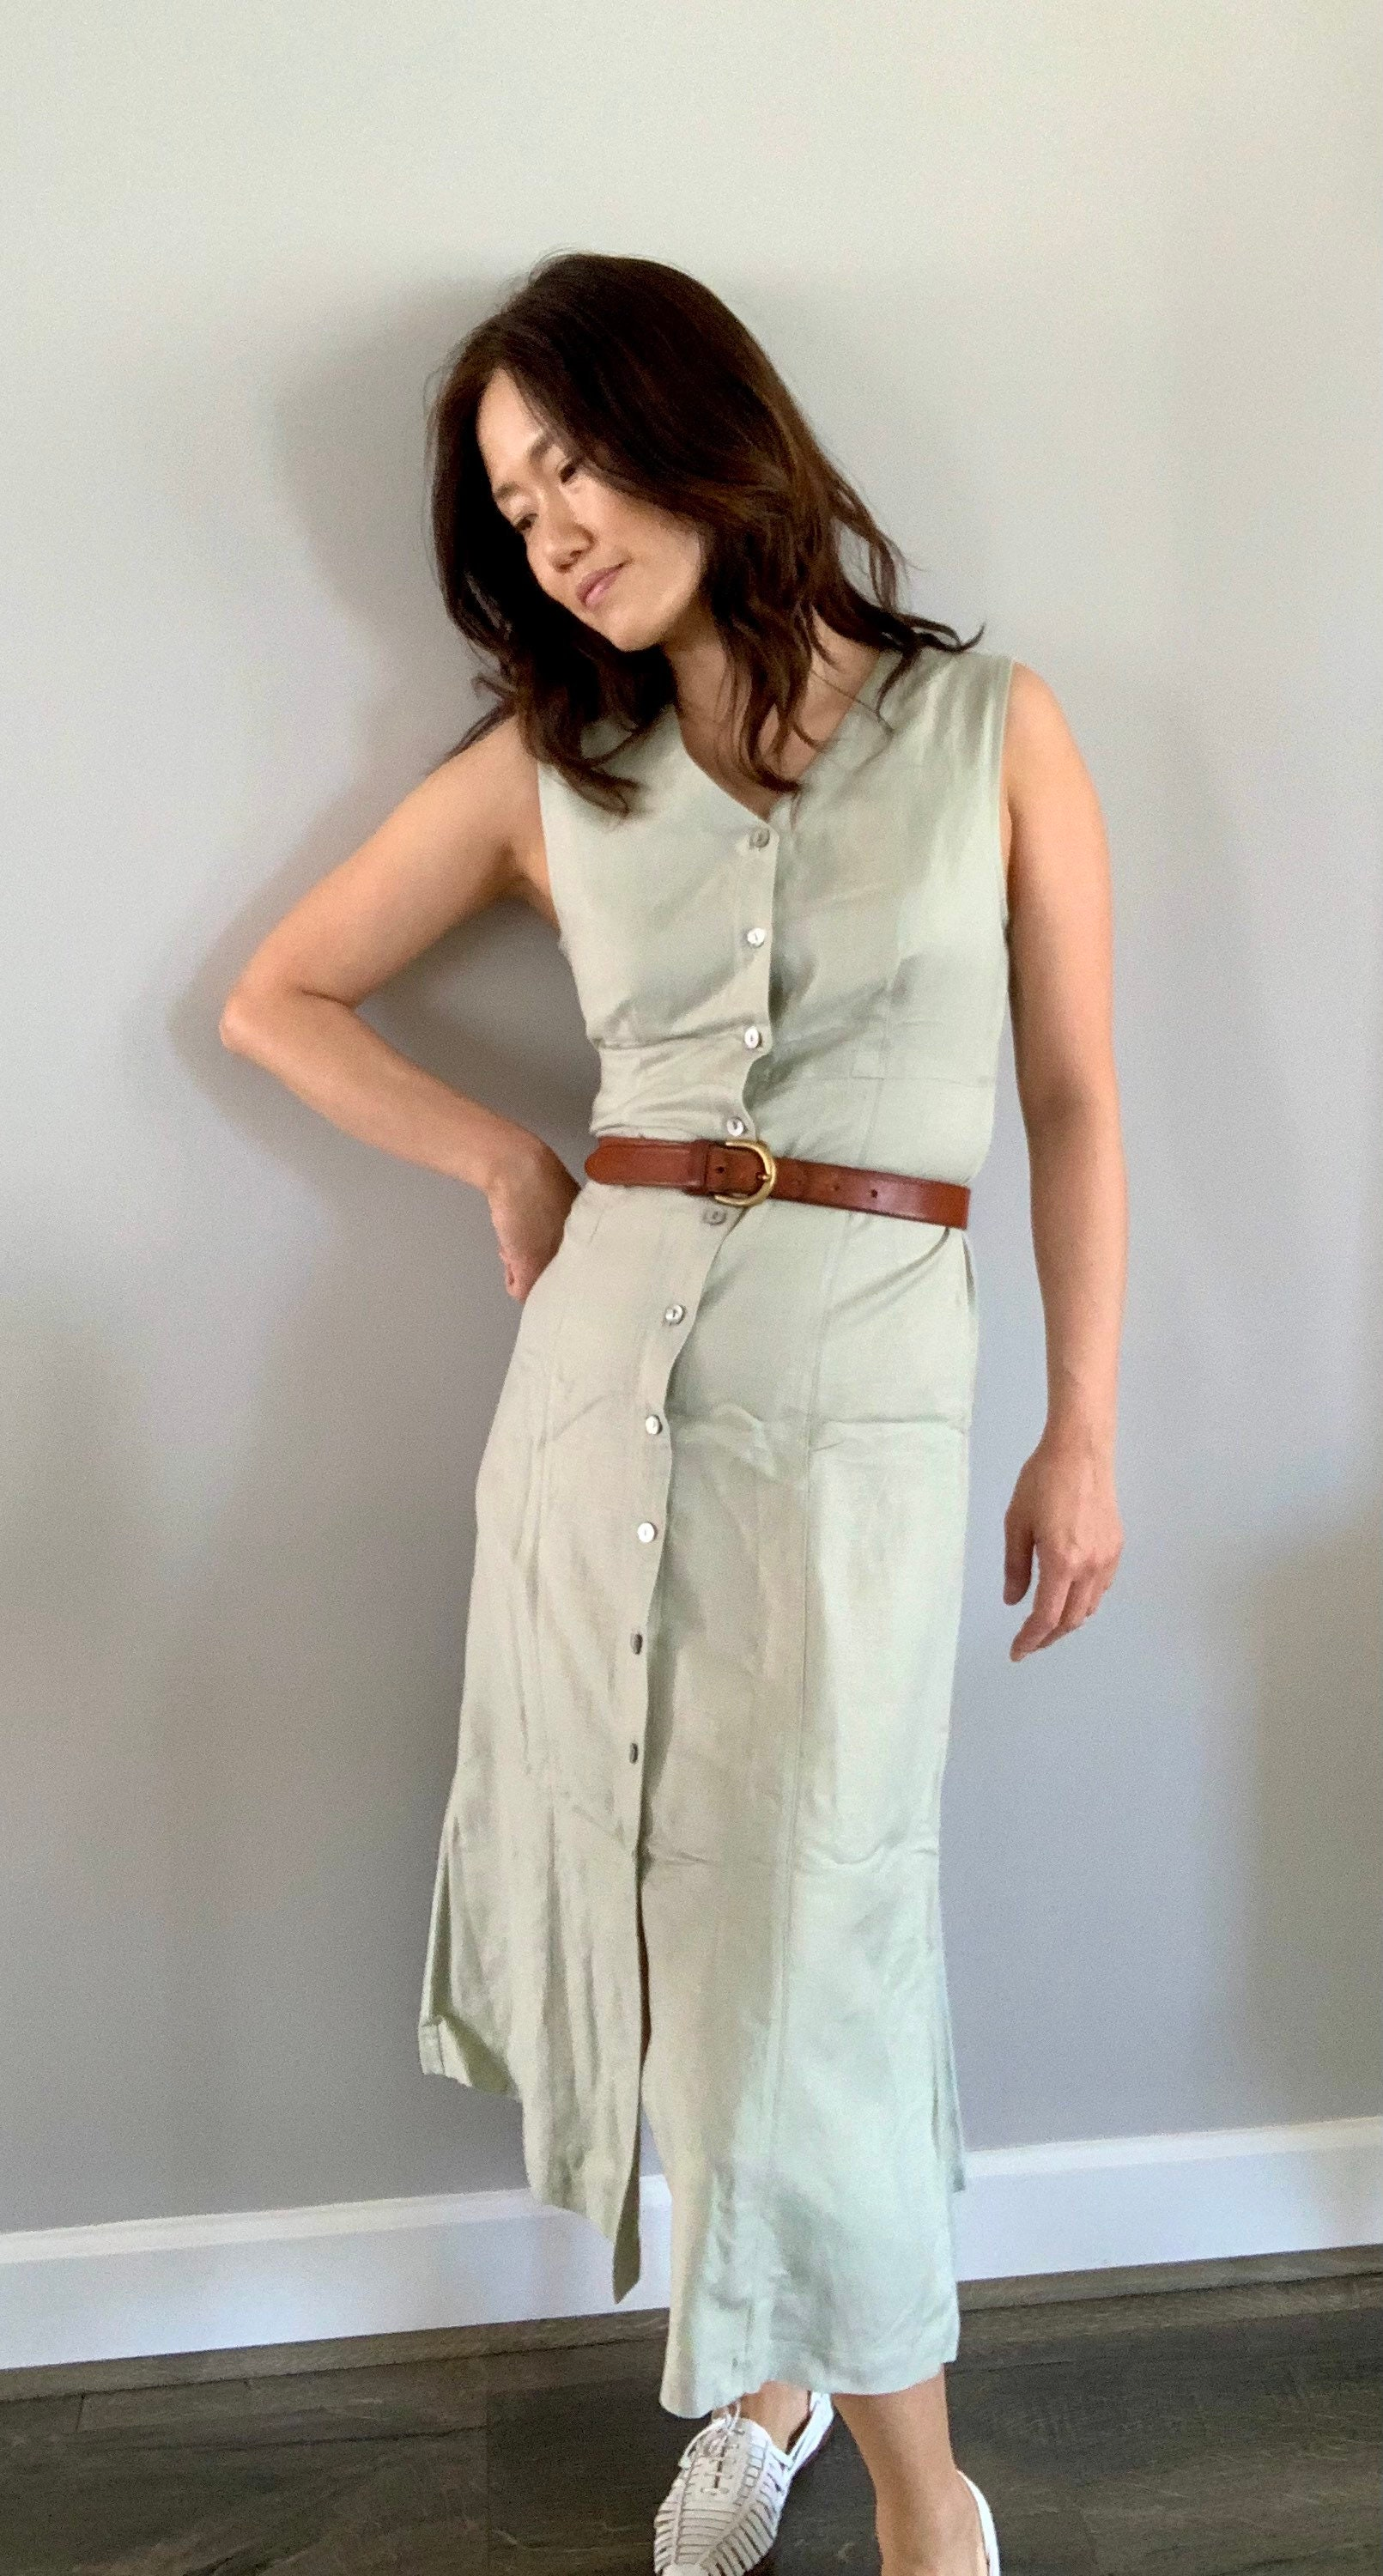 80s Dresses | Casual to Party Dresses 1980S Linen DusterSleeveless Maxi Dress Size 4P, XsmallSage Green $75.65 AT vintagedancer.com